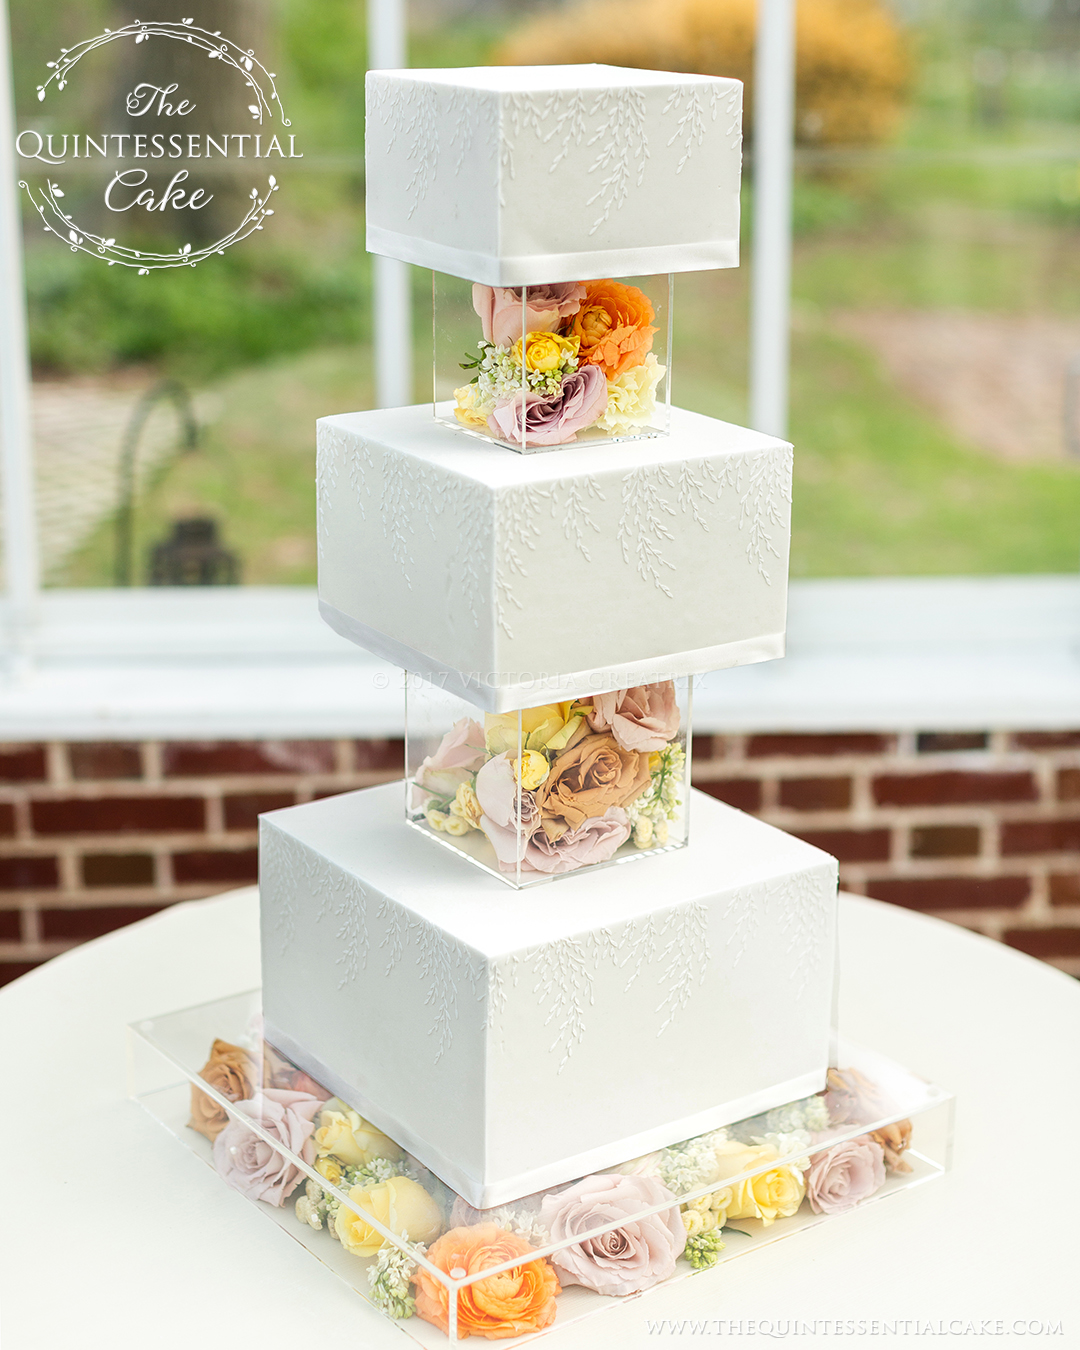 TQC Square Cake with Acrylic Risers & Fresh Flowers | The Quintessential Cake | Chicago | Luxury Wedding Cakes | The Cheney Mansion |